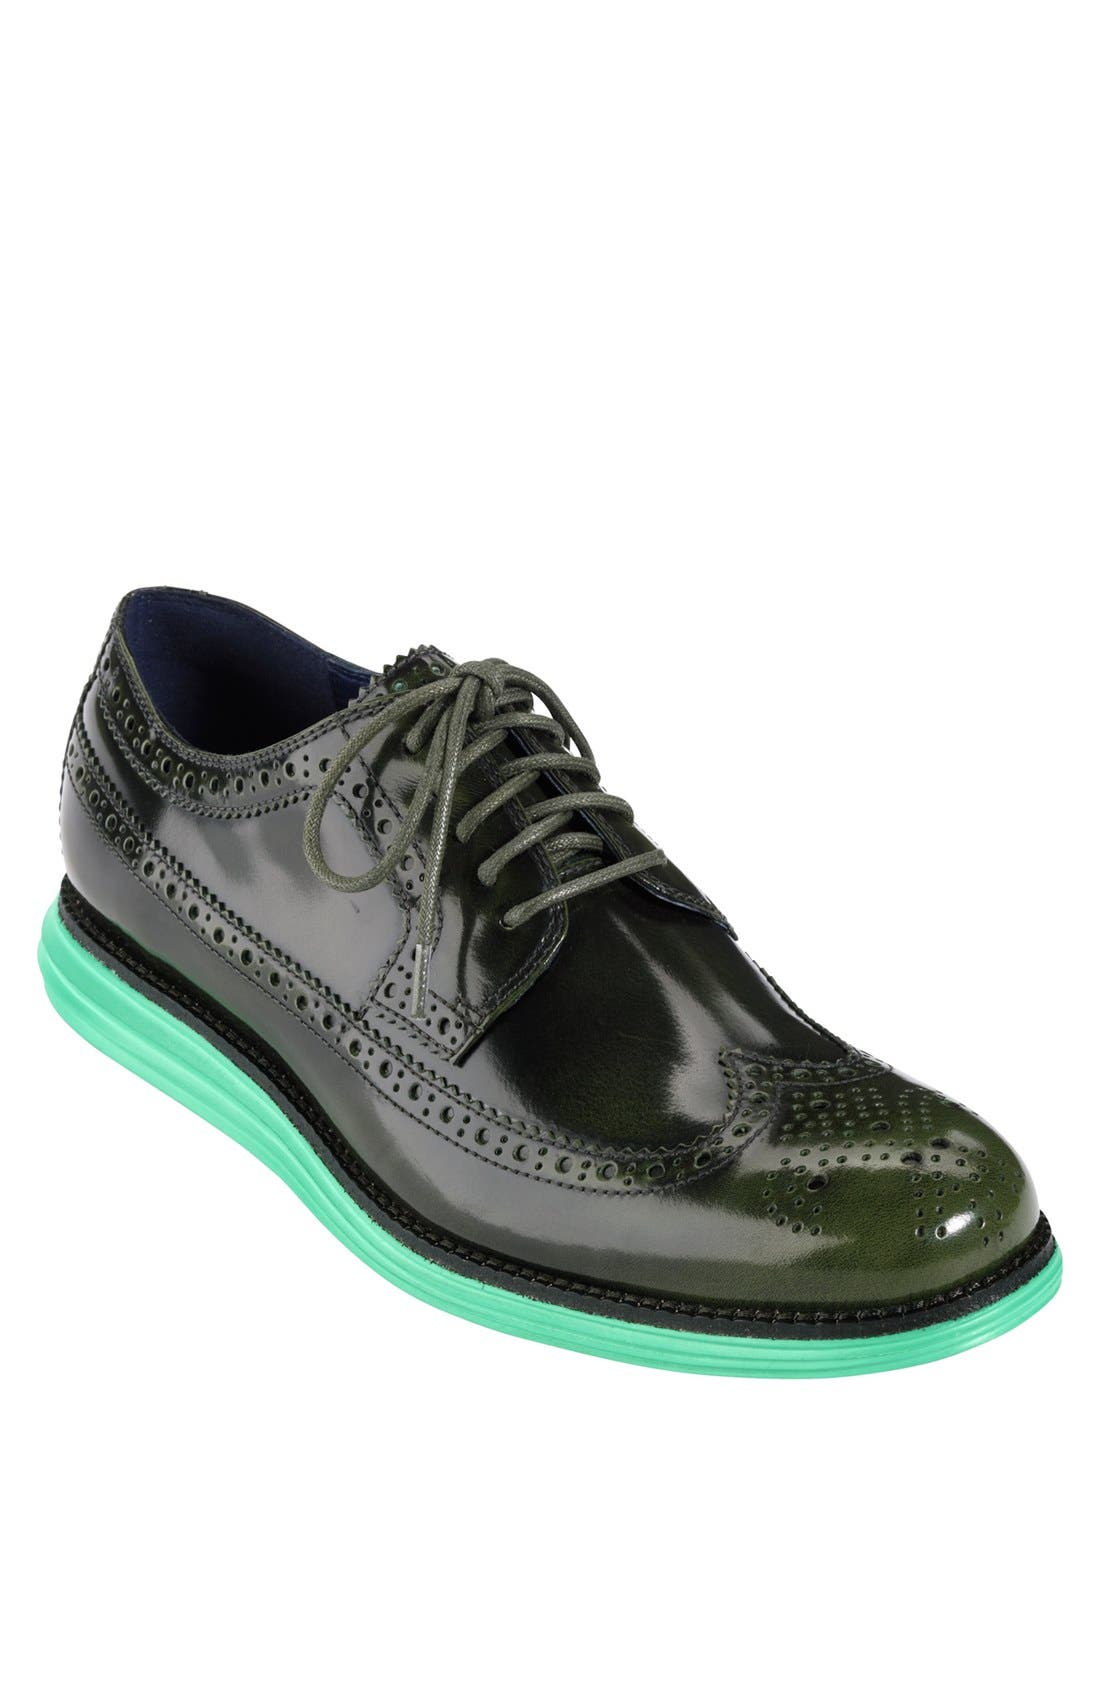 Main Image - Cole Haan 'LunarGrand' Longwing (Men)